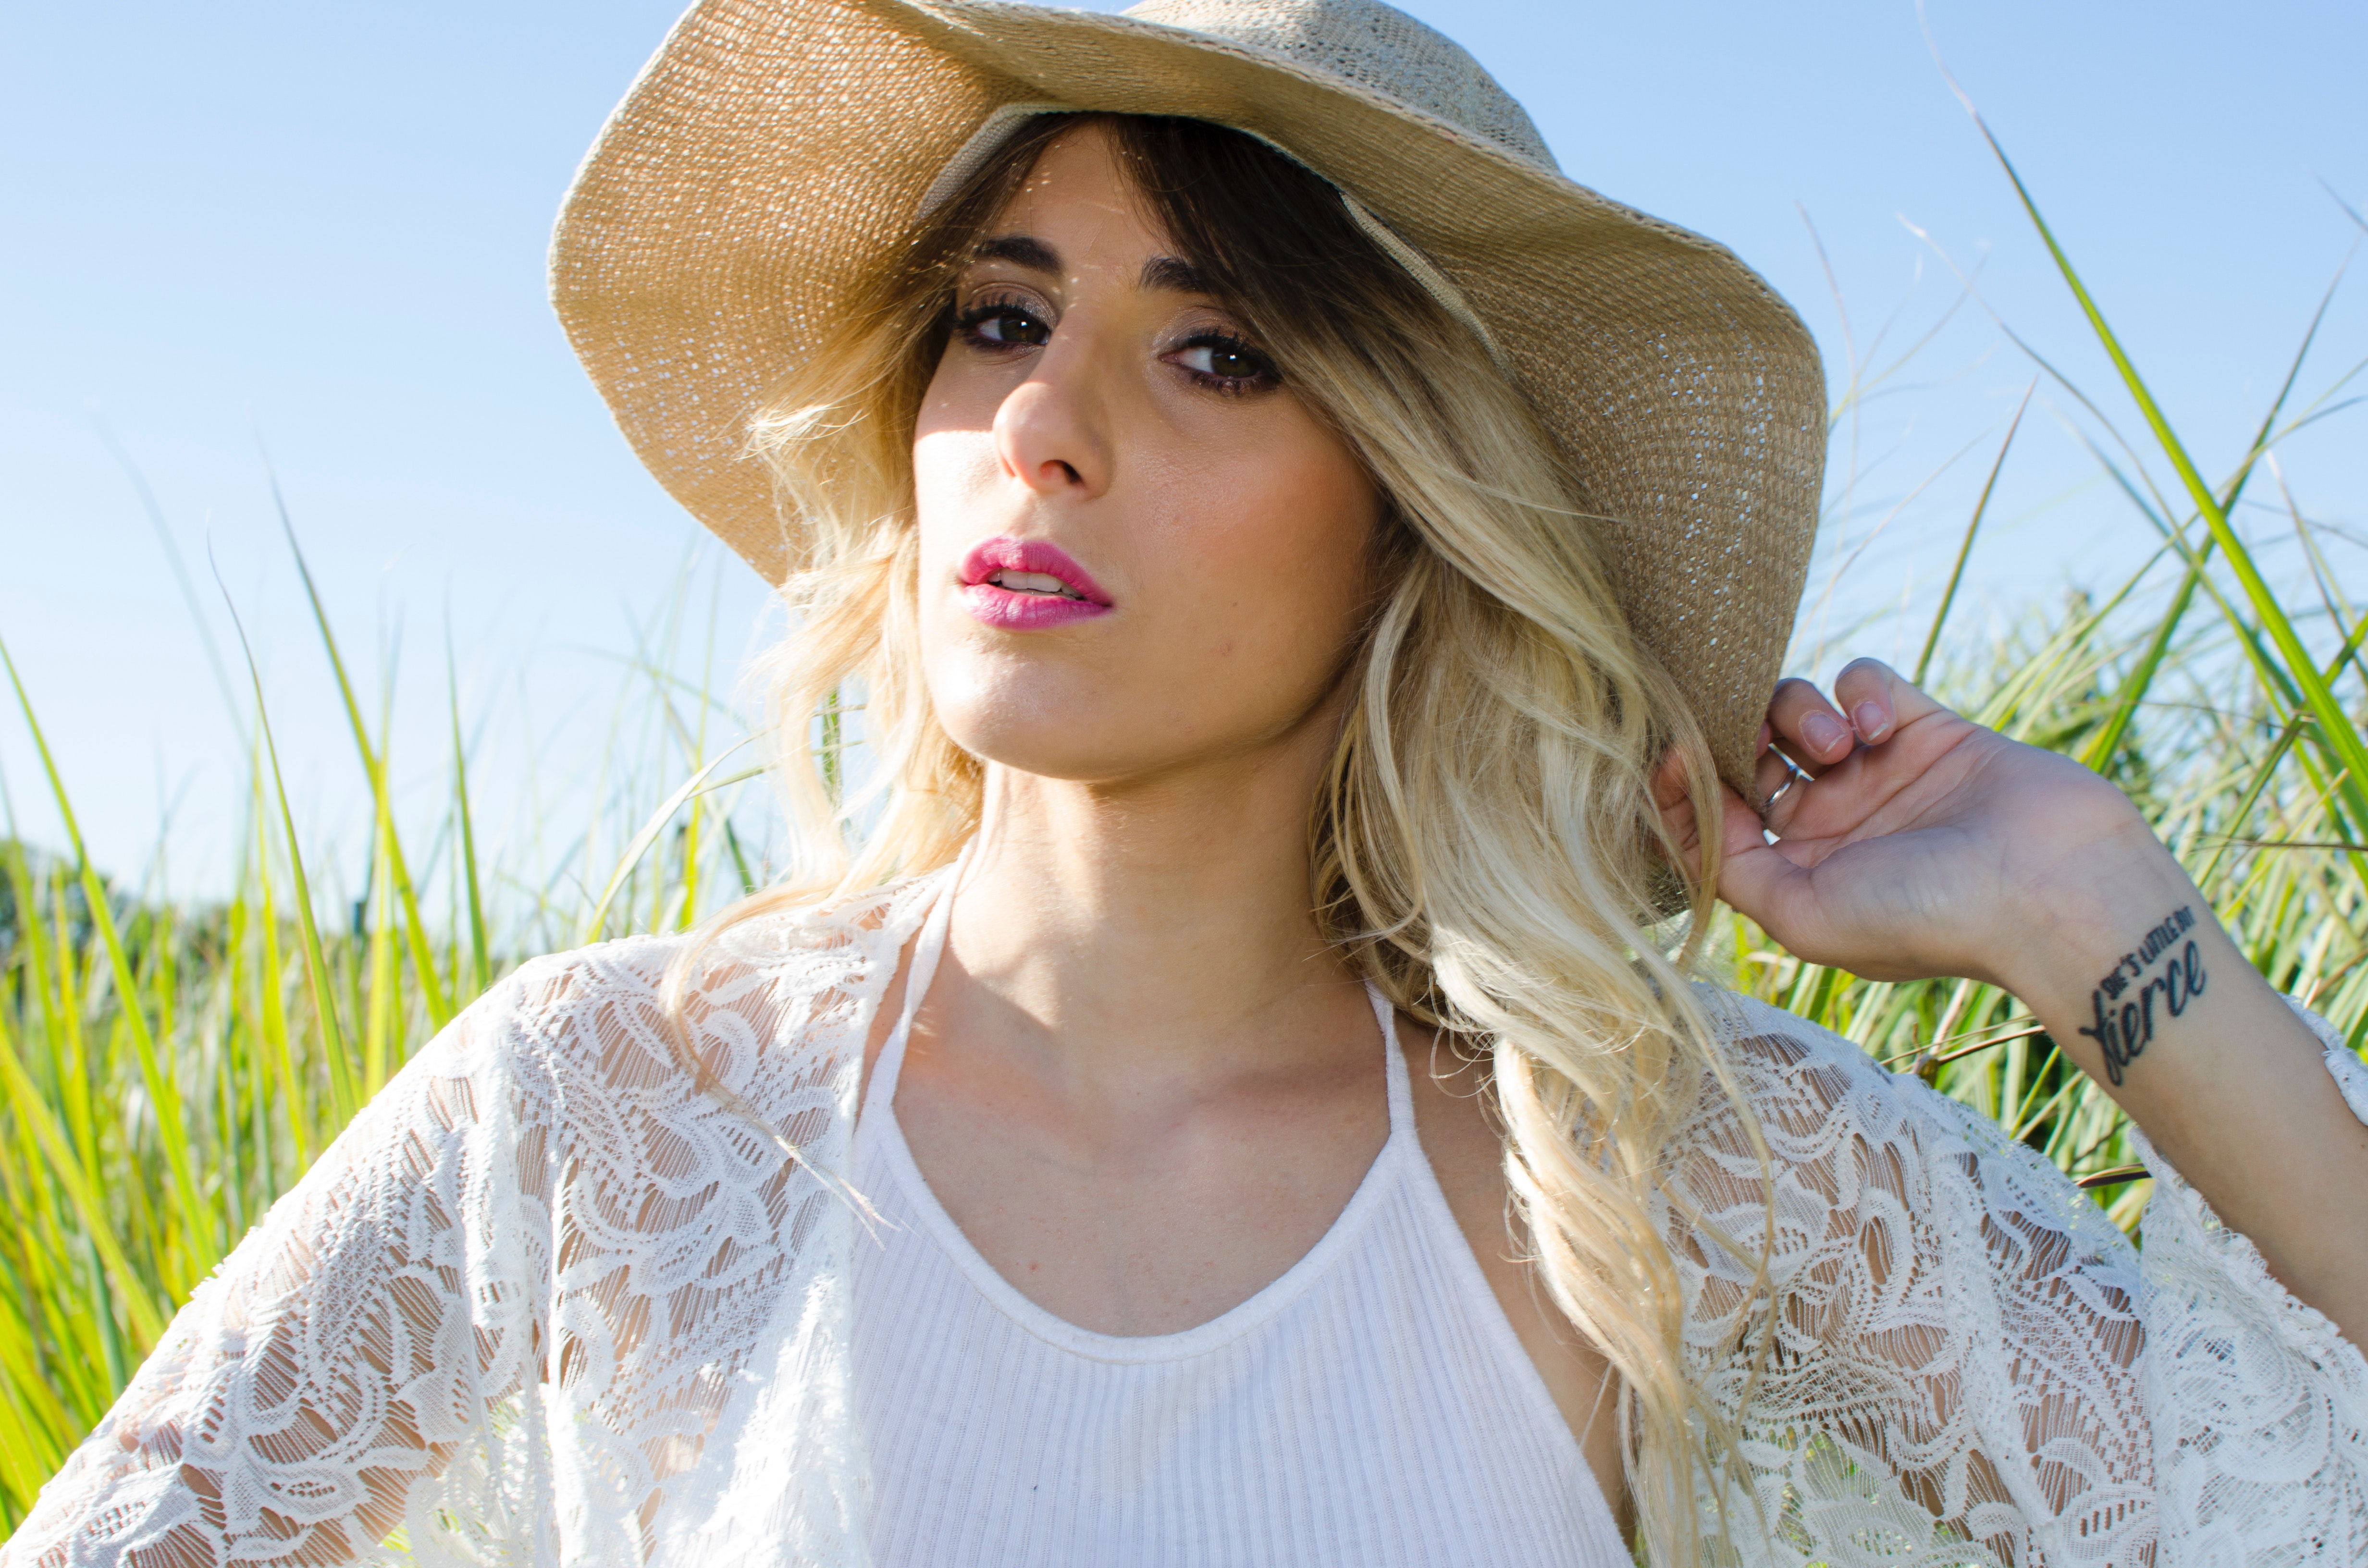 Woman wearing brown hat and white cardigan standing in middle of grass field photo